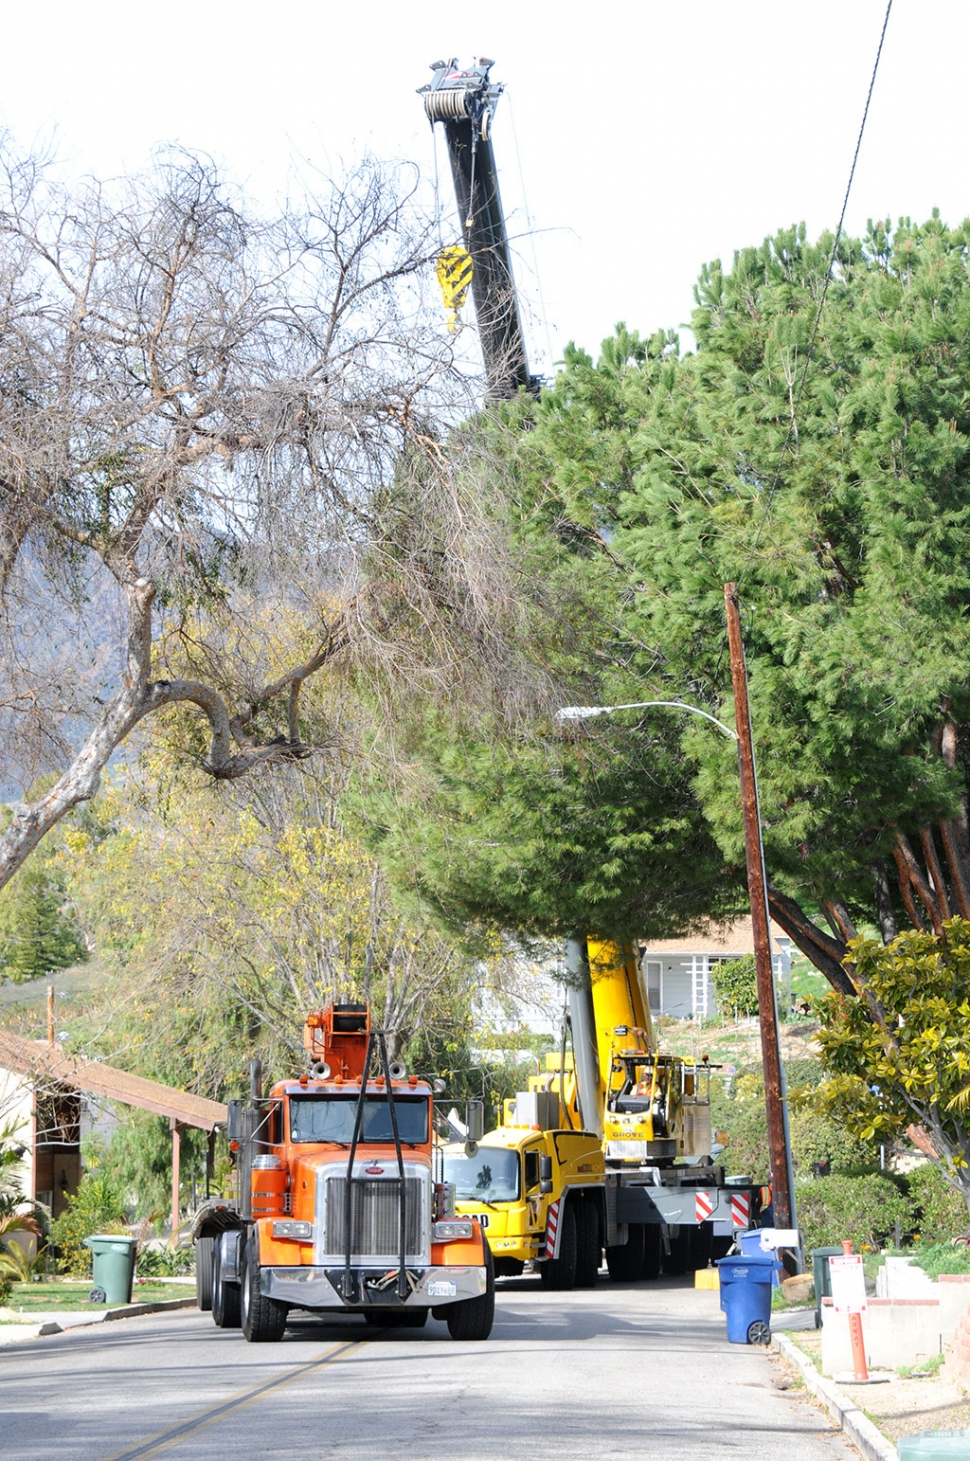 A large tree needed to be removed from Foothill Drive on Friday, January 24th. The street was closed to one lane while crews brought in a giant crane to safely remove the tree. The soil surrounding the root system was too soft, and the tree posed a danger to area homes and cars.